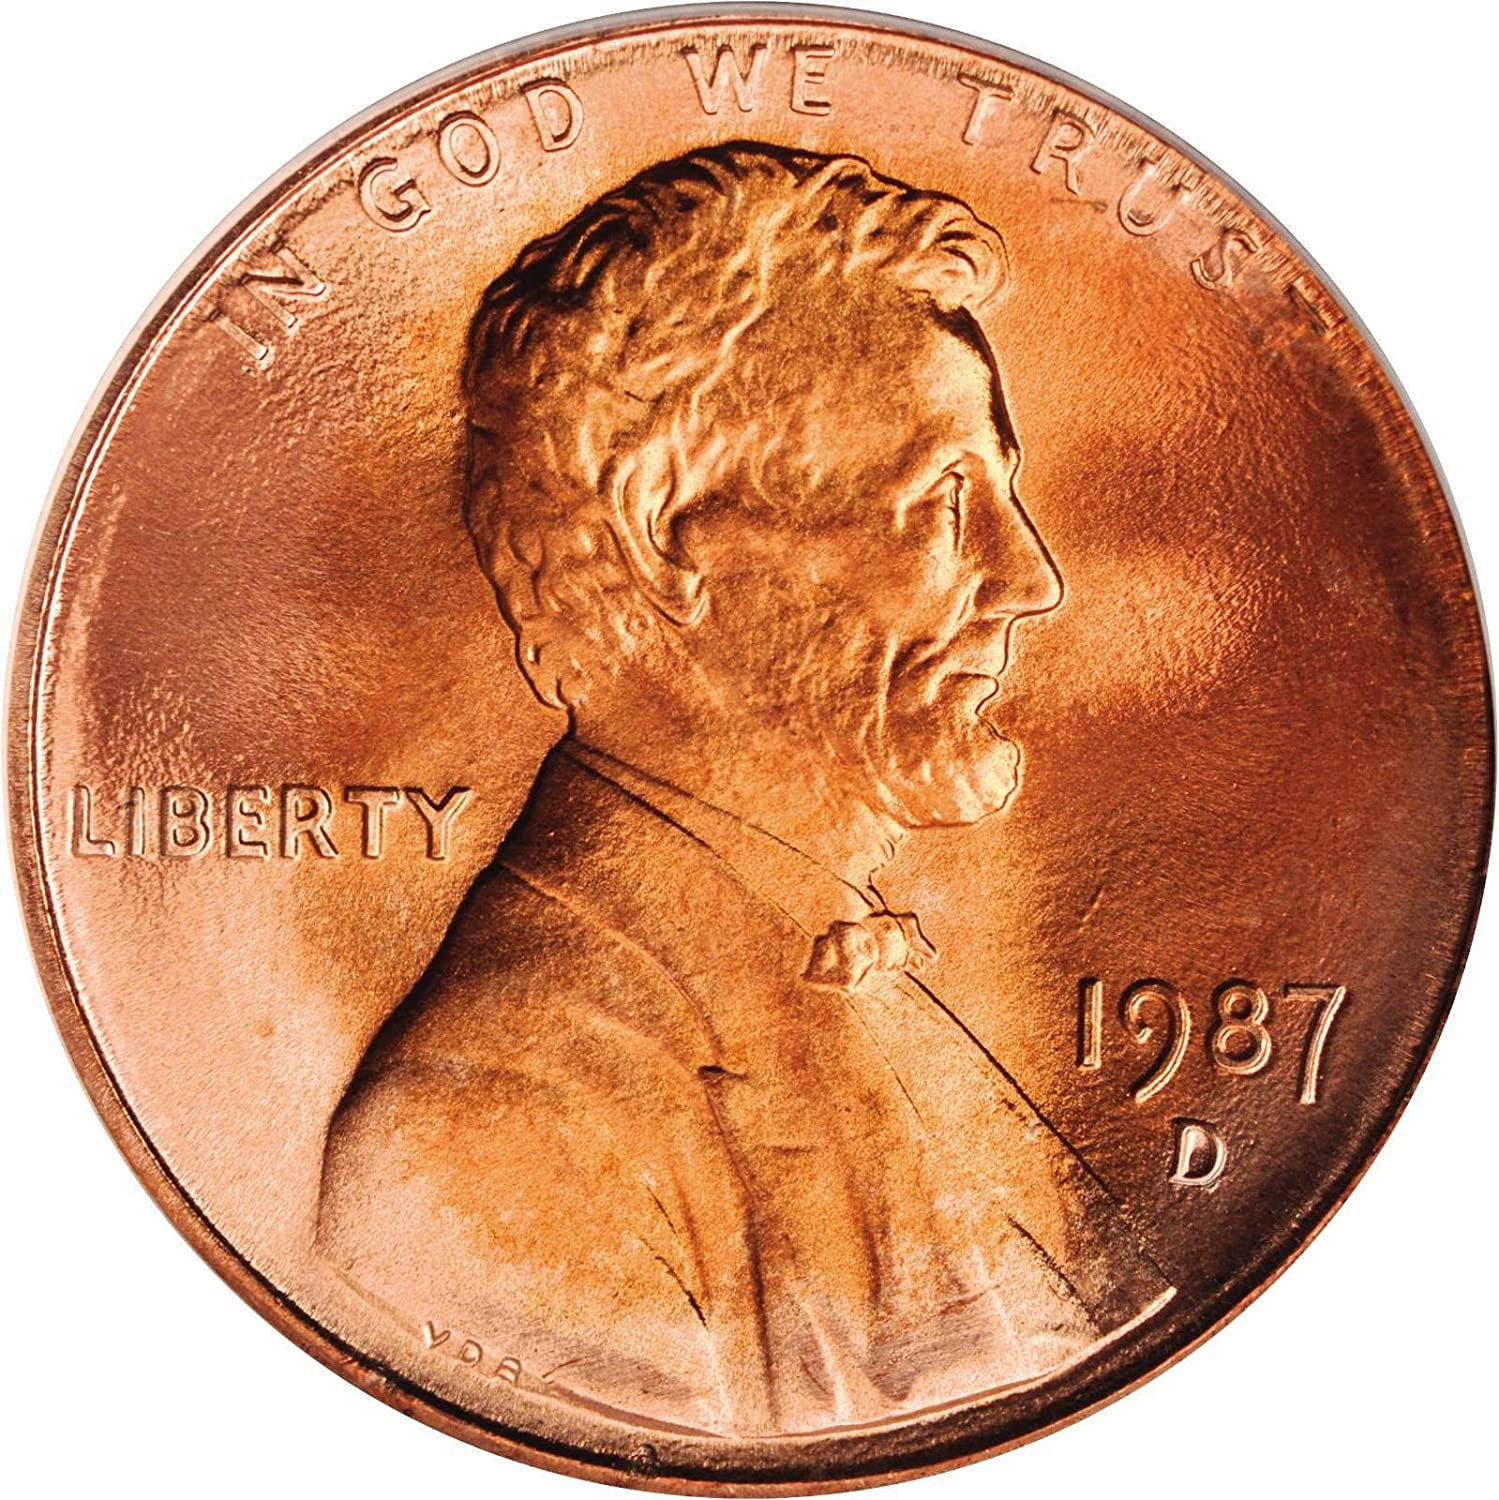 1987 D UNCIRCULATED USA Small Cent